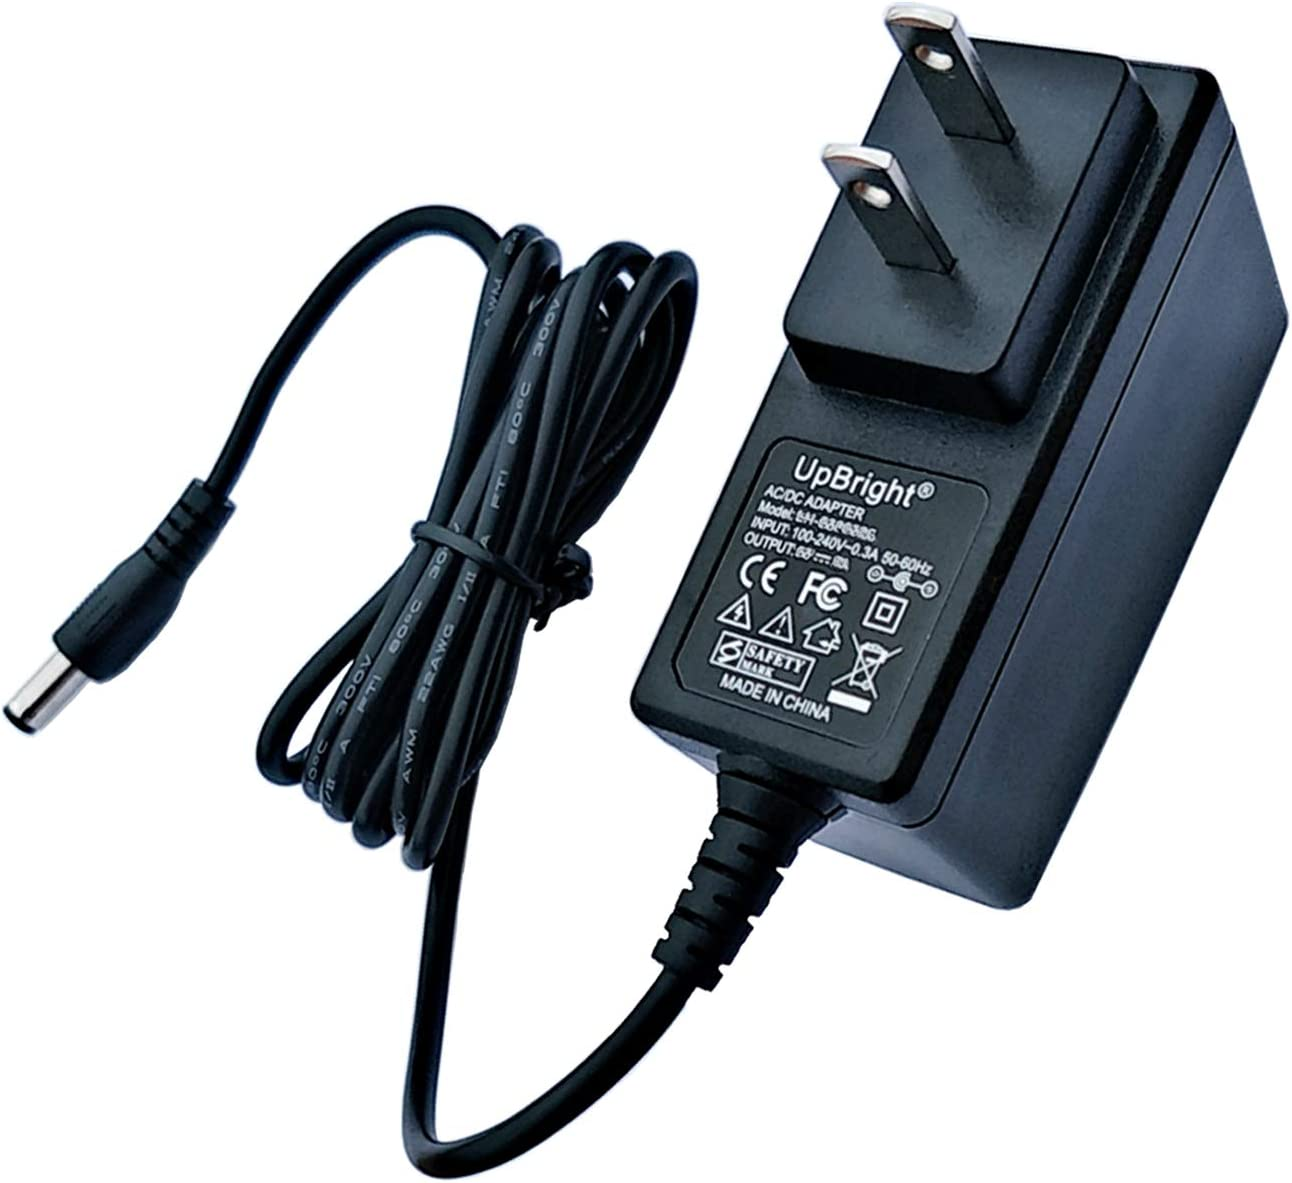 UpBright AC/DC Adapter Compatible with Goovi by ONSON D380 1600PA D382 J10C J20C F007 F007C Robotic Smart Vacuum Cleaner Docking Station GV2019 Diggro KK320A1N D600 D300 19V Power Battery Charger